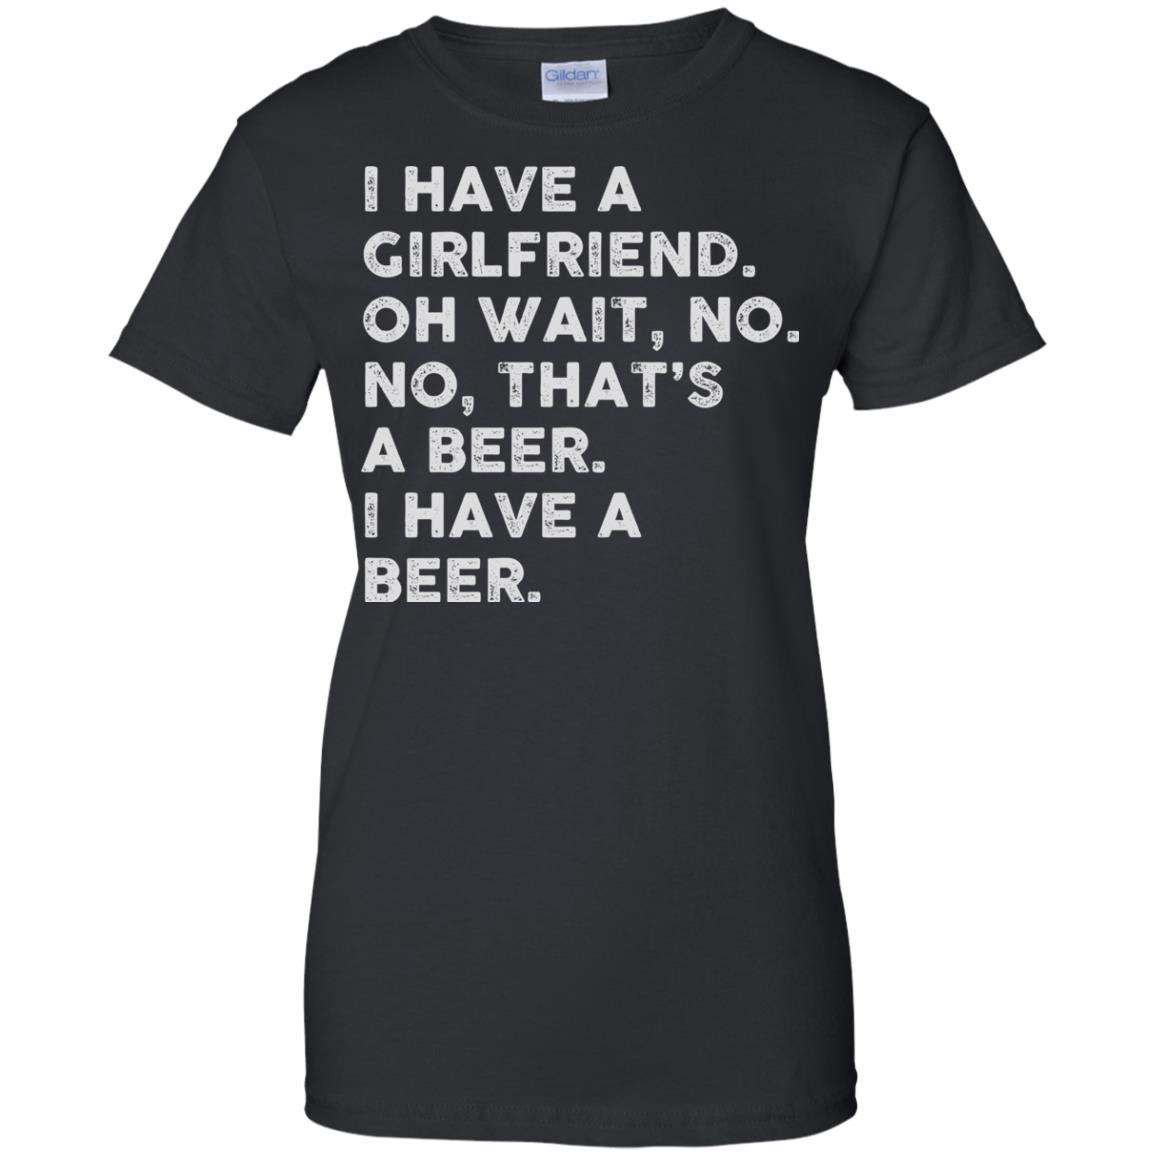 image 2187 - I have a girlfriend oh wait No No that's a beer shirt, hoodie